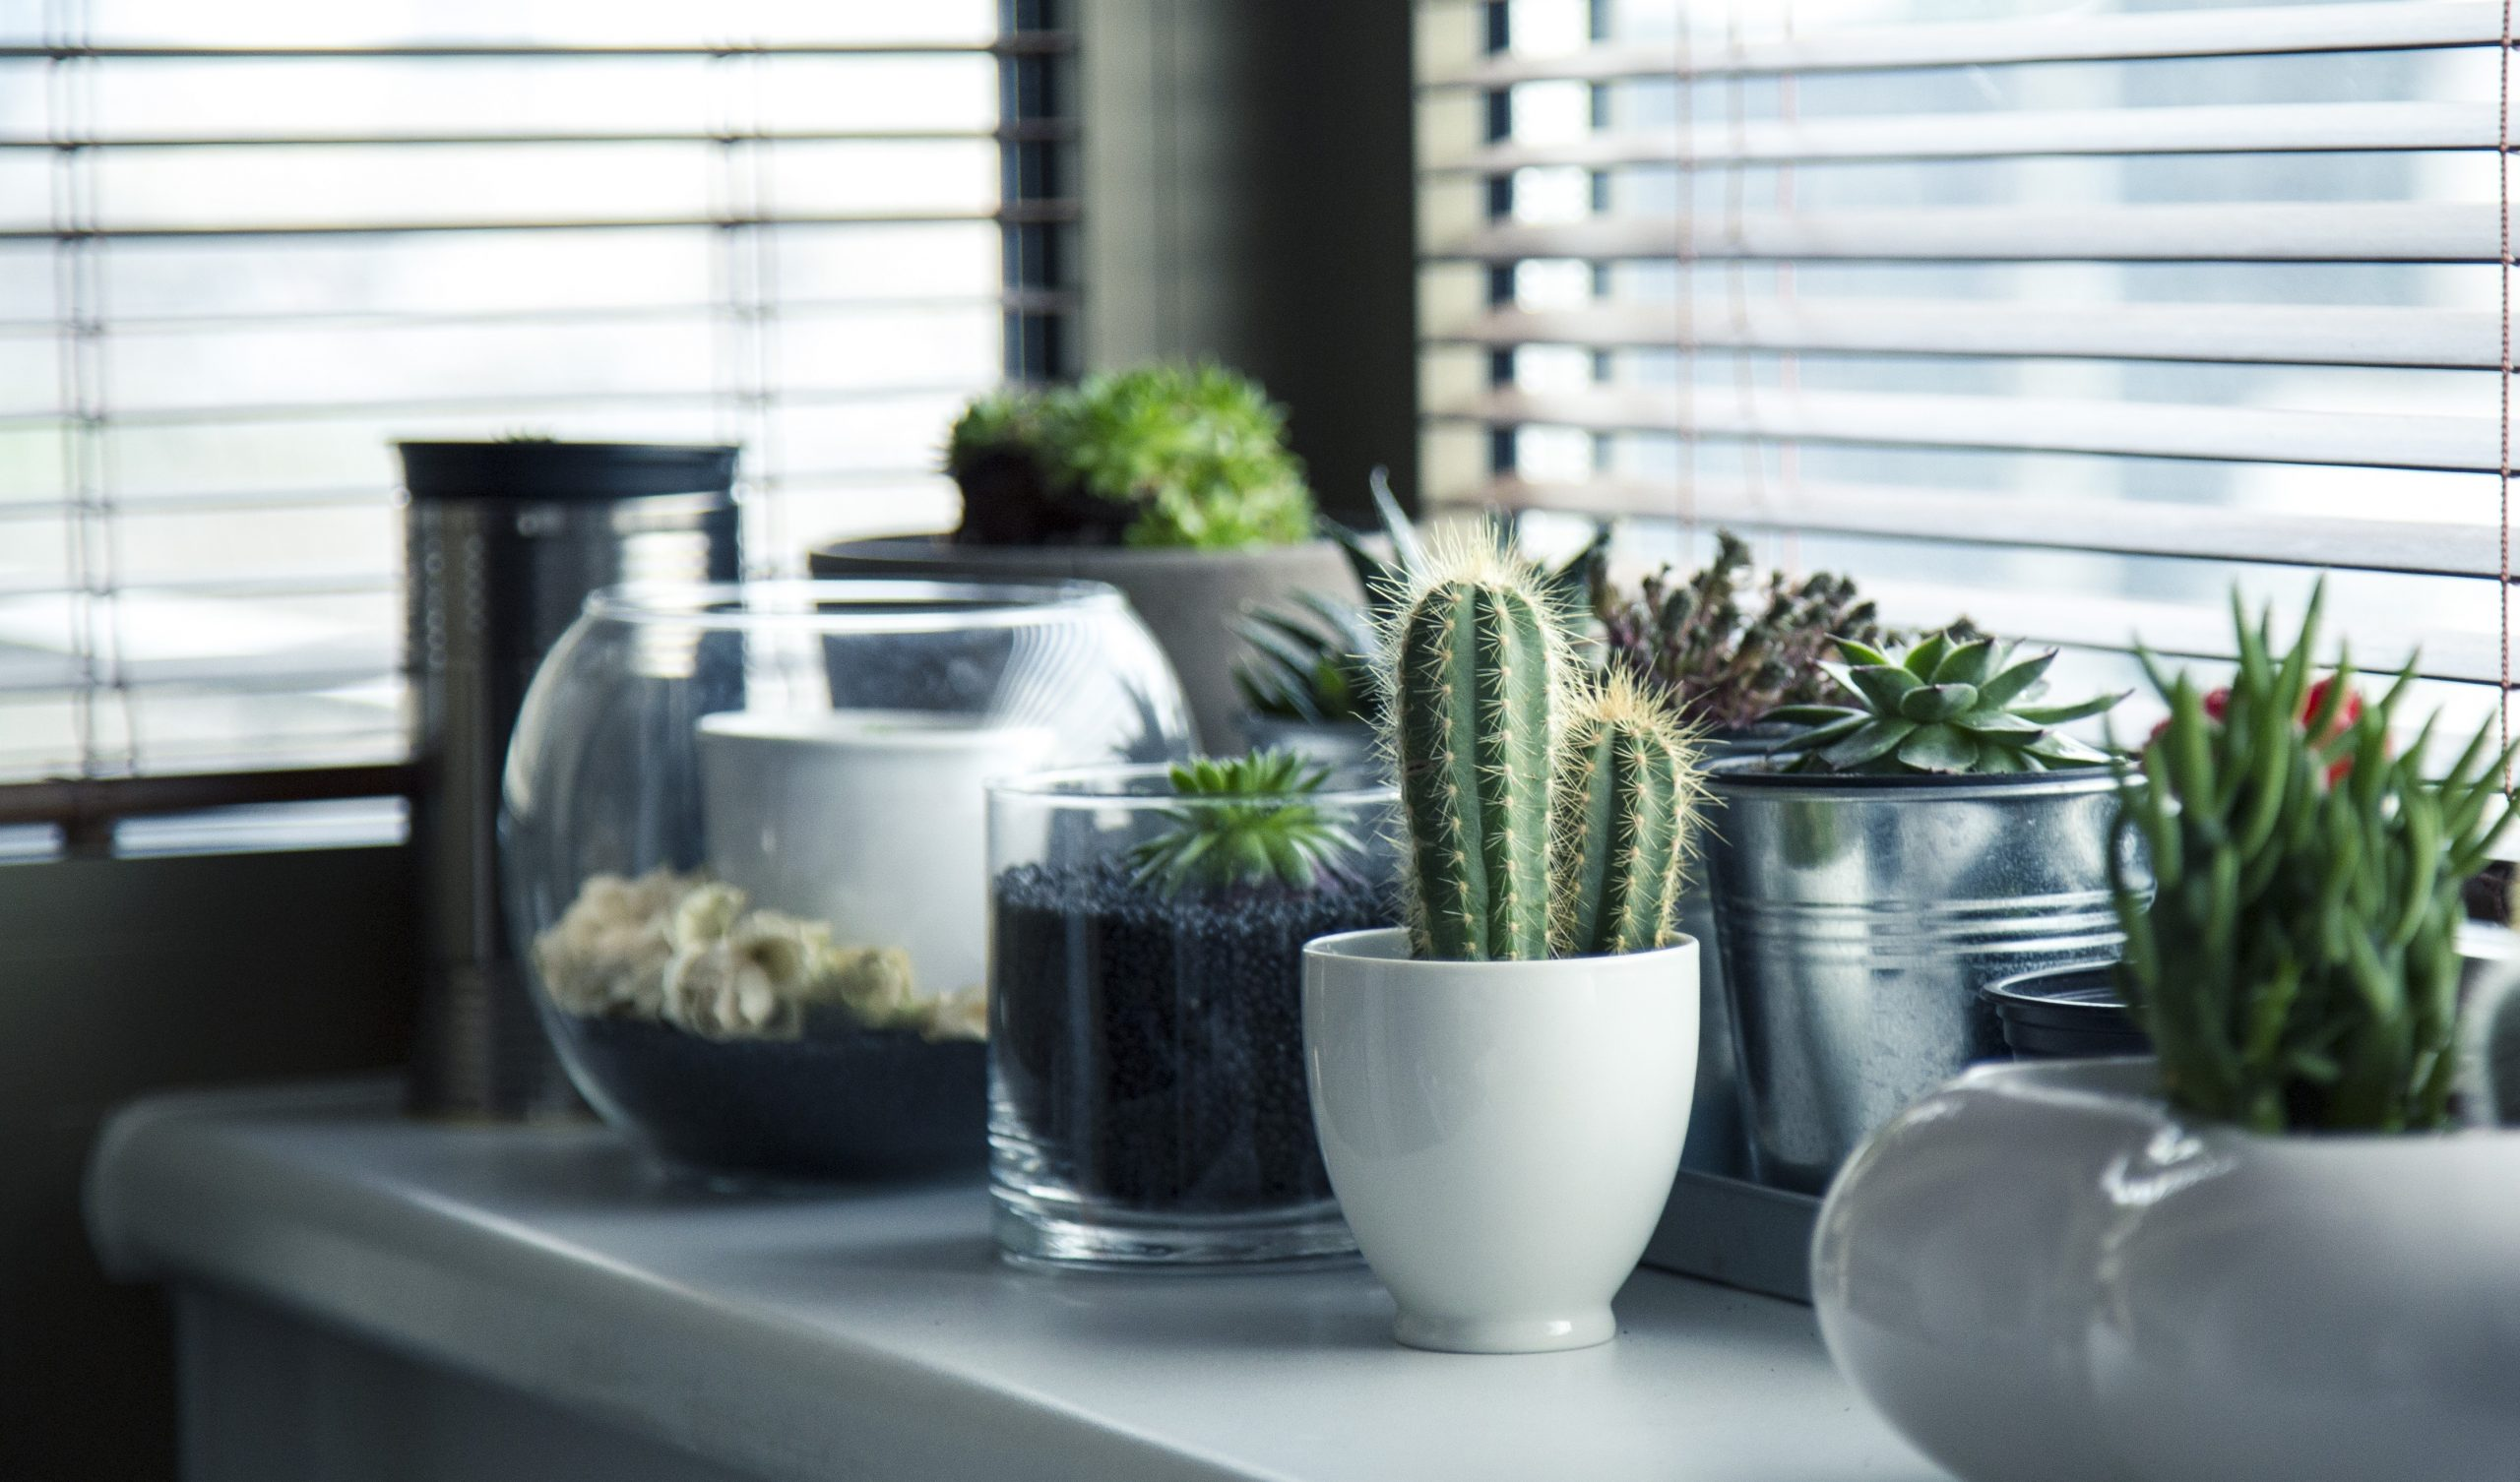 cacti and succulents on windowsill